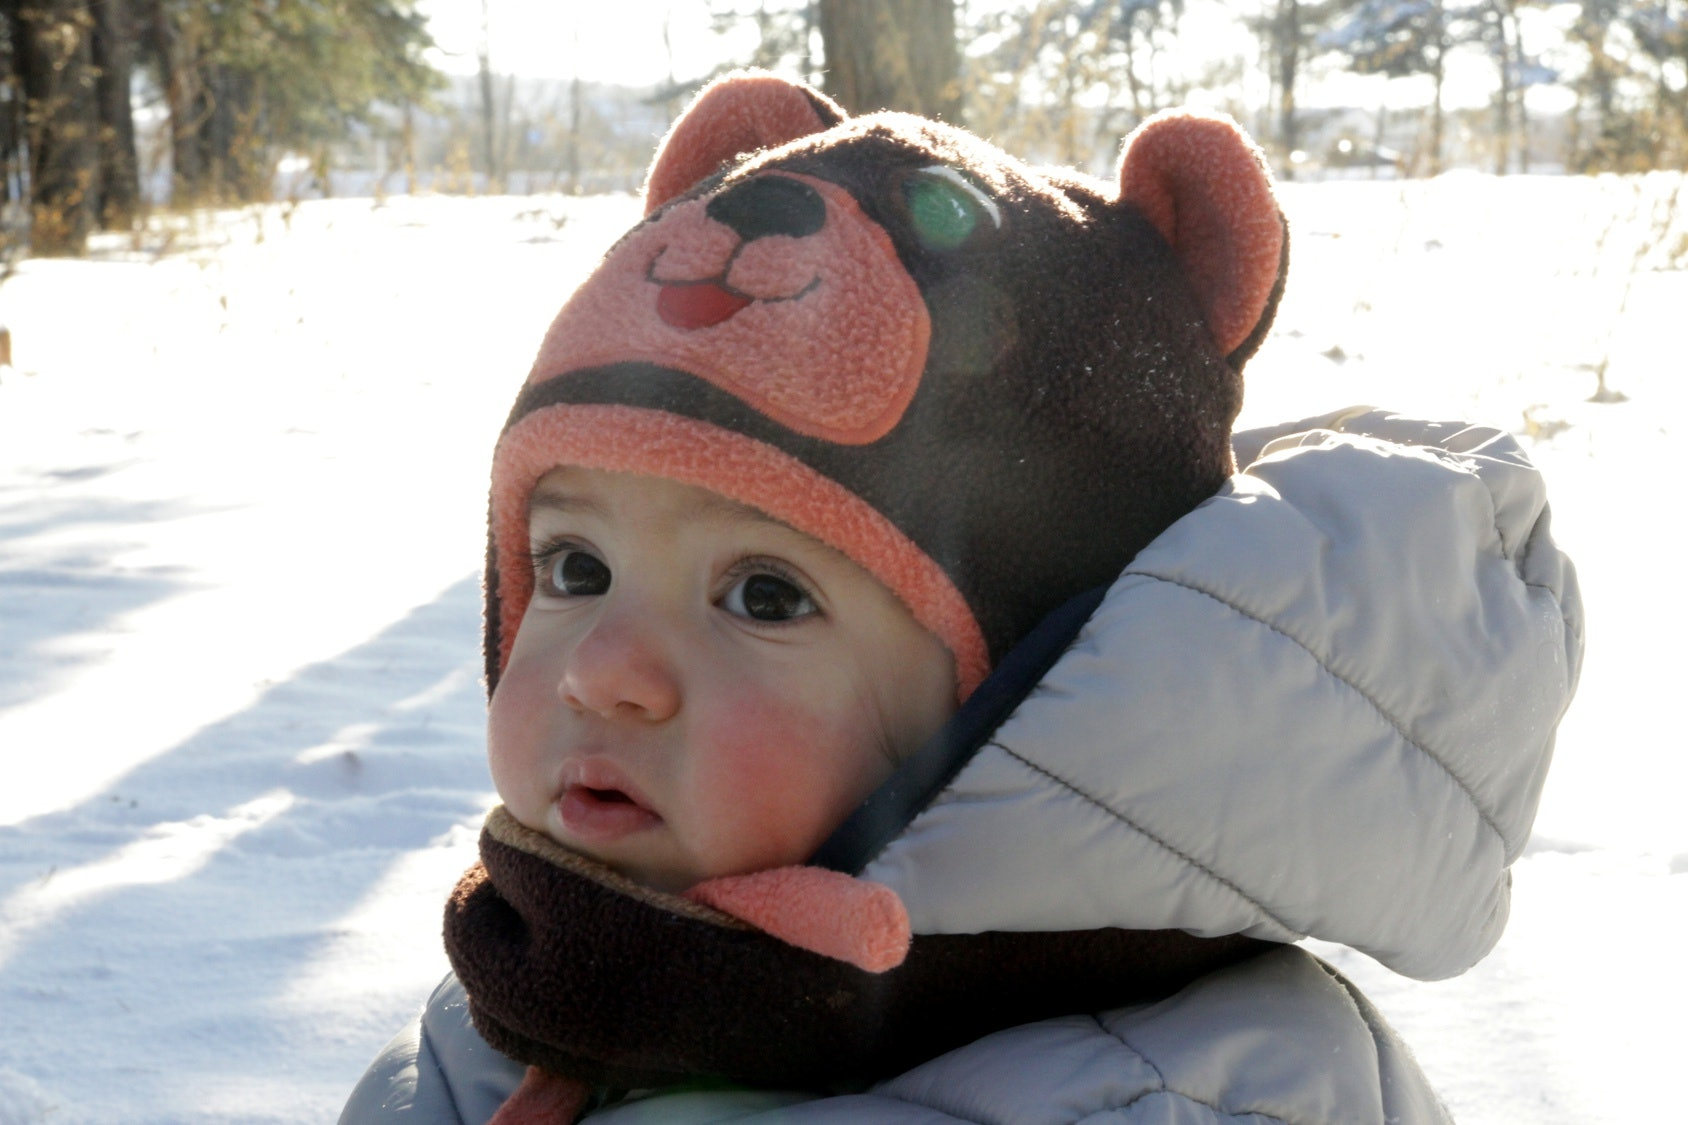 9 Hacks To Keep Your Baby Warm In Cold Weather